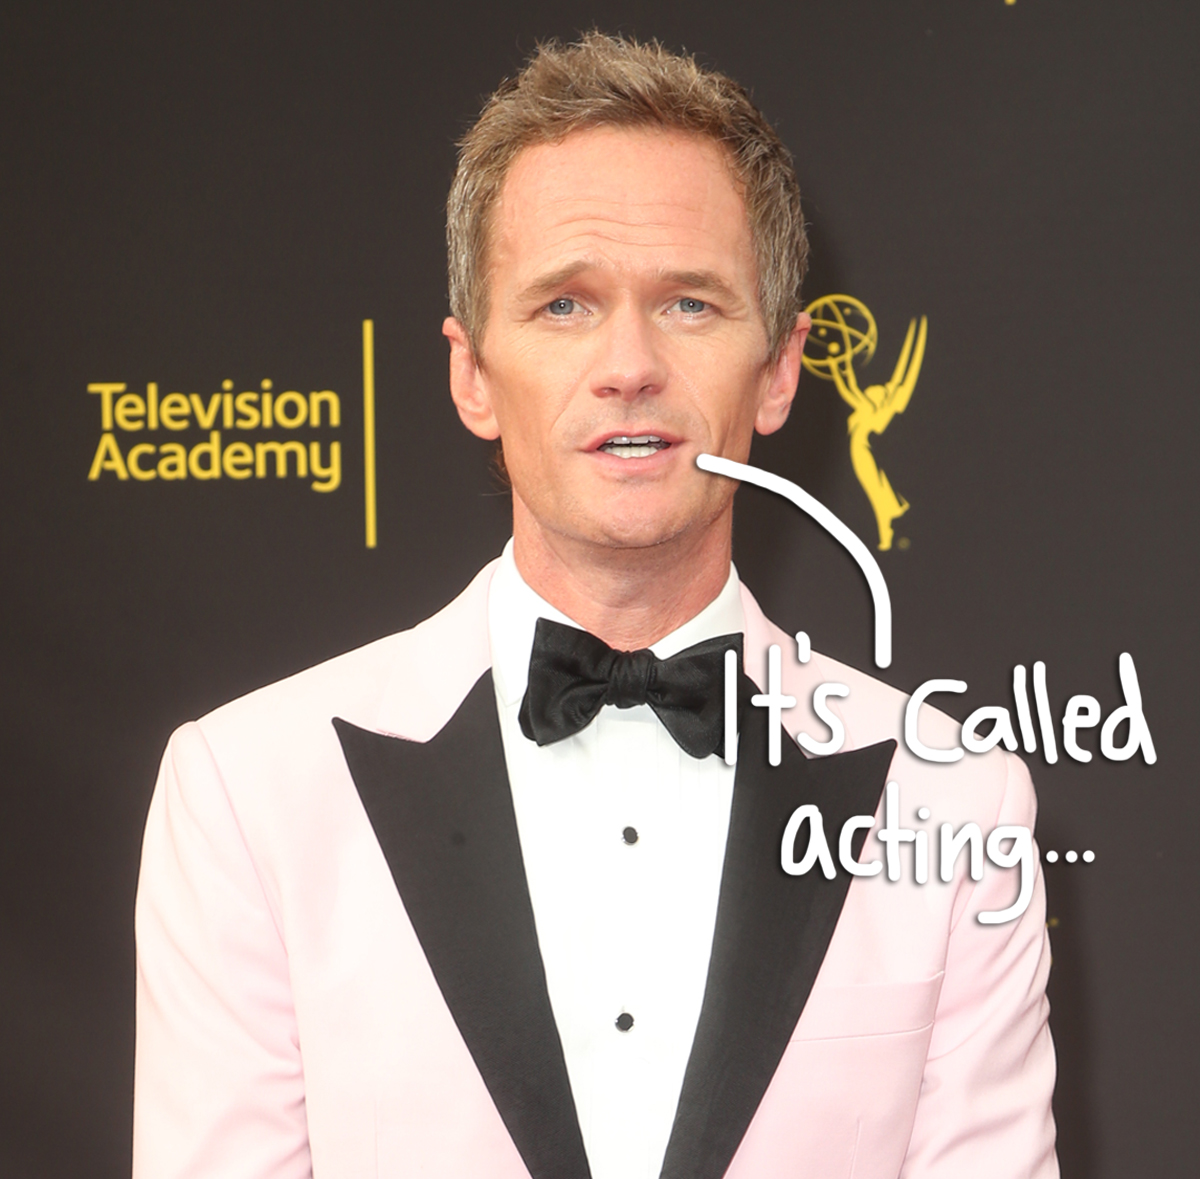 Neil Patrick Harris Pushes Back On Idea That LGBT Actors Should Play LGBT Roles: 'Hire The Best Actor'